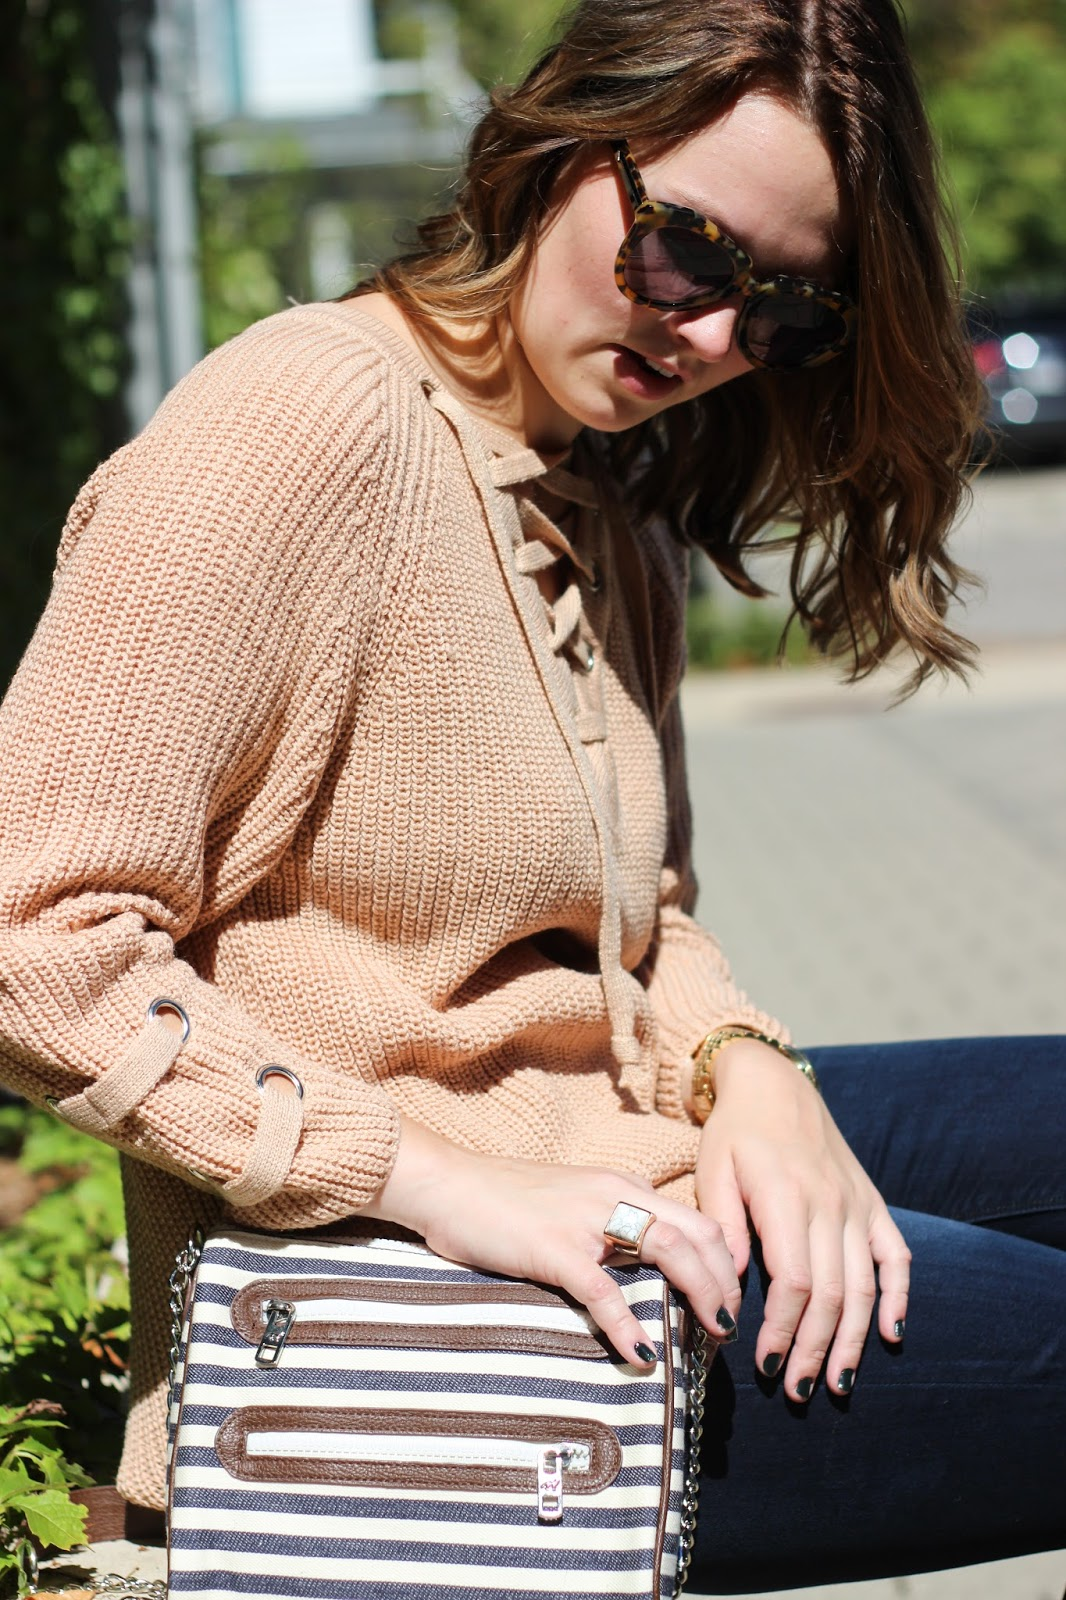 Lace It Up. Chicwish Lace-up Mood Sweater ... 1c2d5c2e0